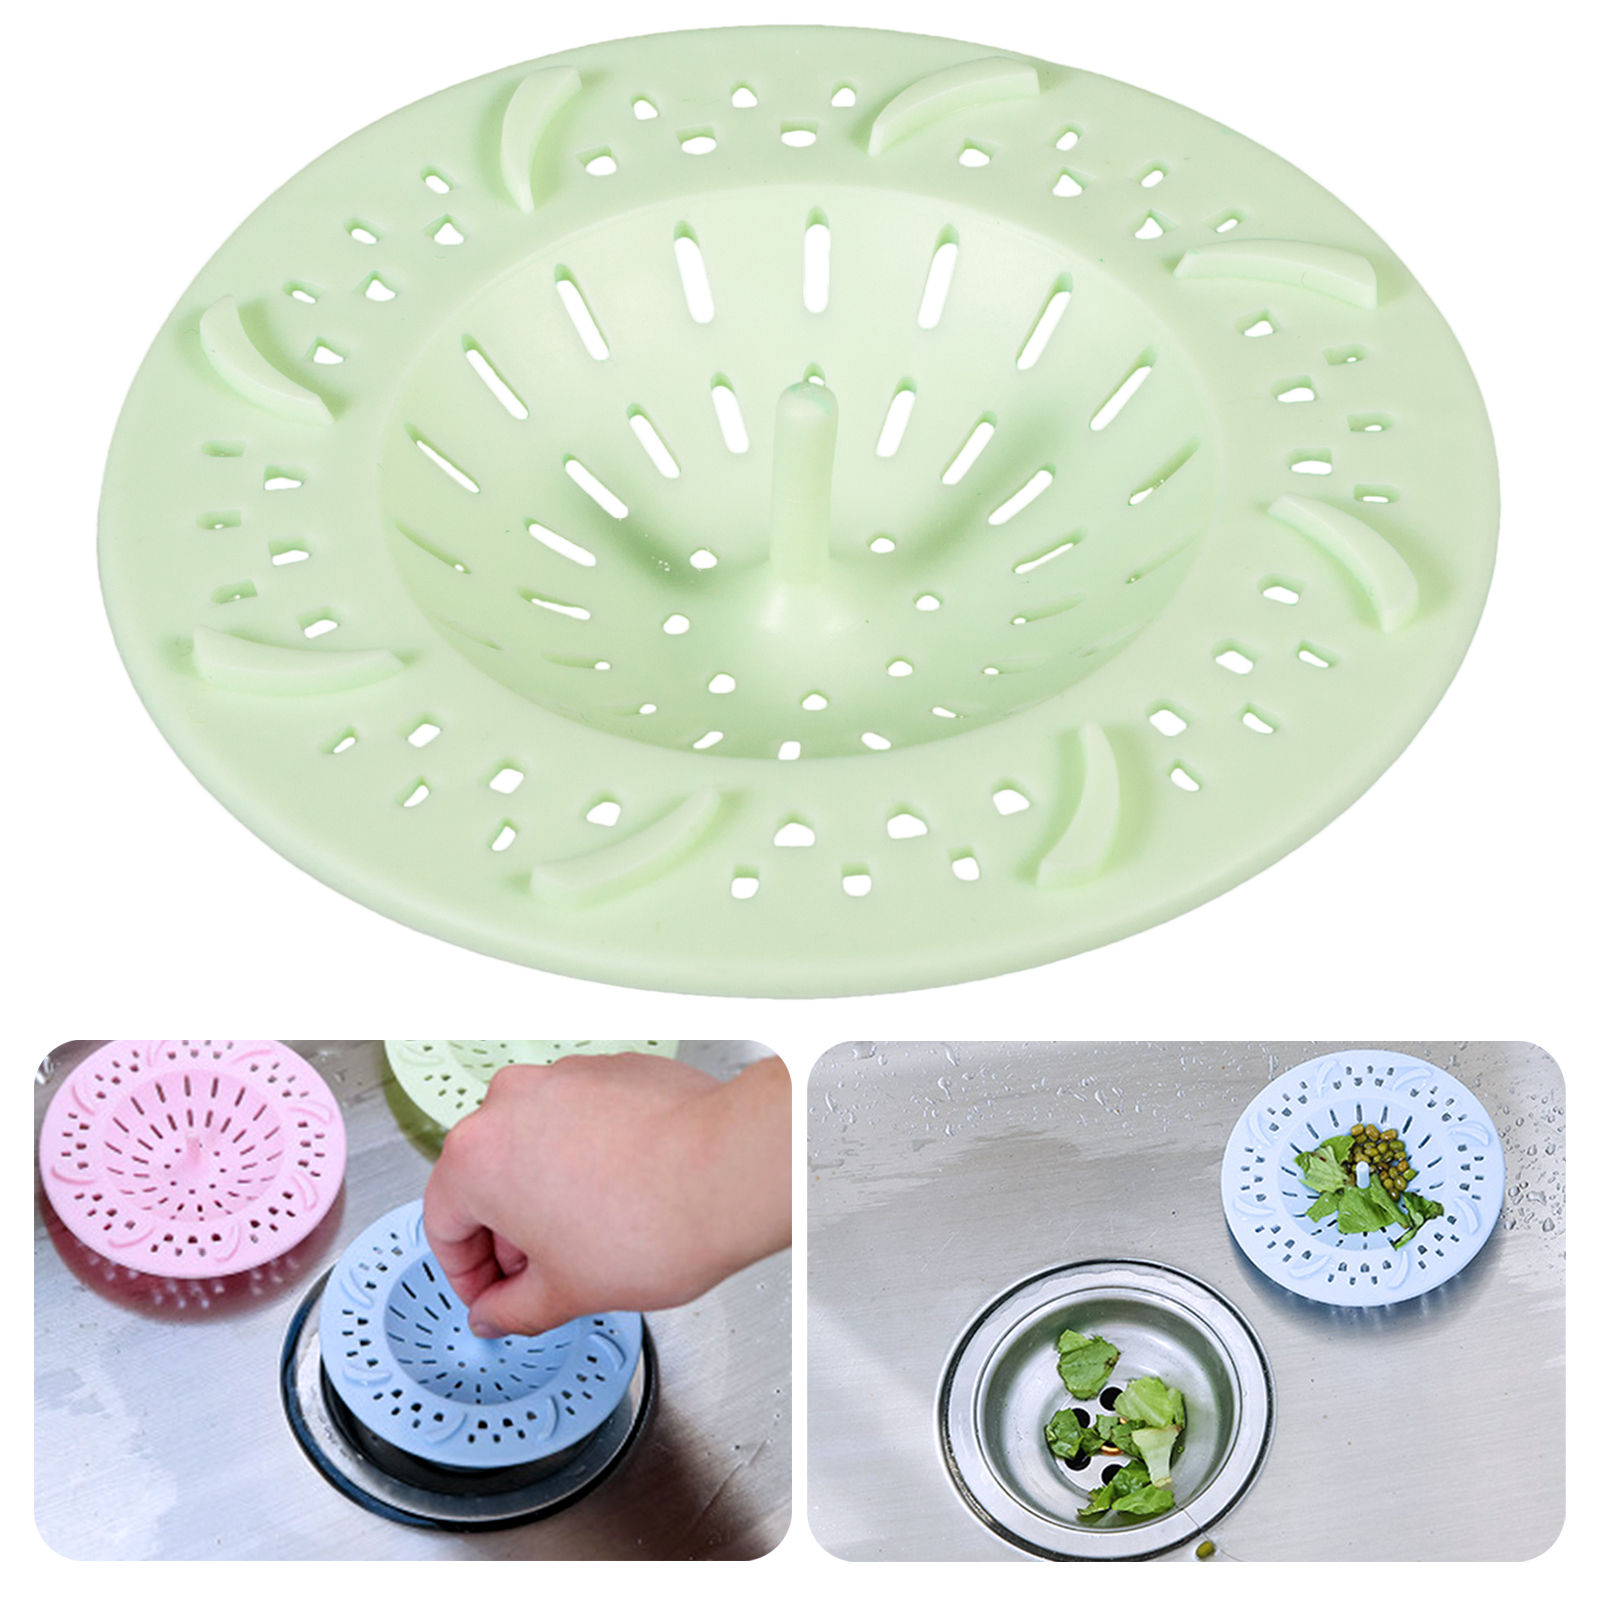 EEEKit Drain Tub Strainer Cover, Soft Silicone Hair Sink Trap Basin Stopper Filter Catcher Shower Bath, Home Accessory